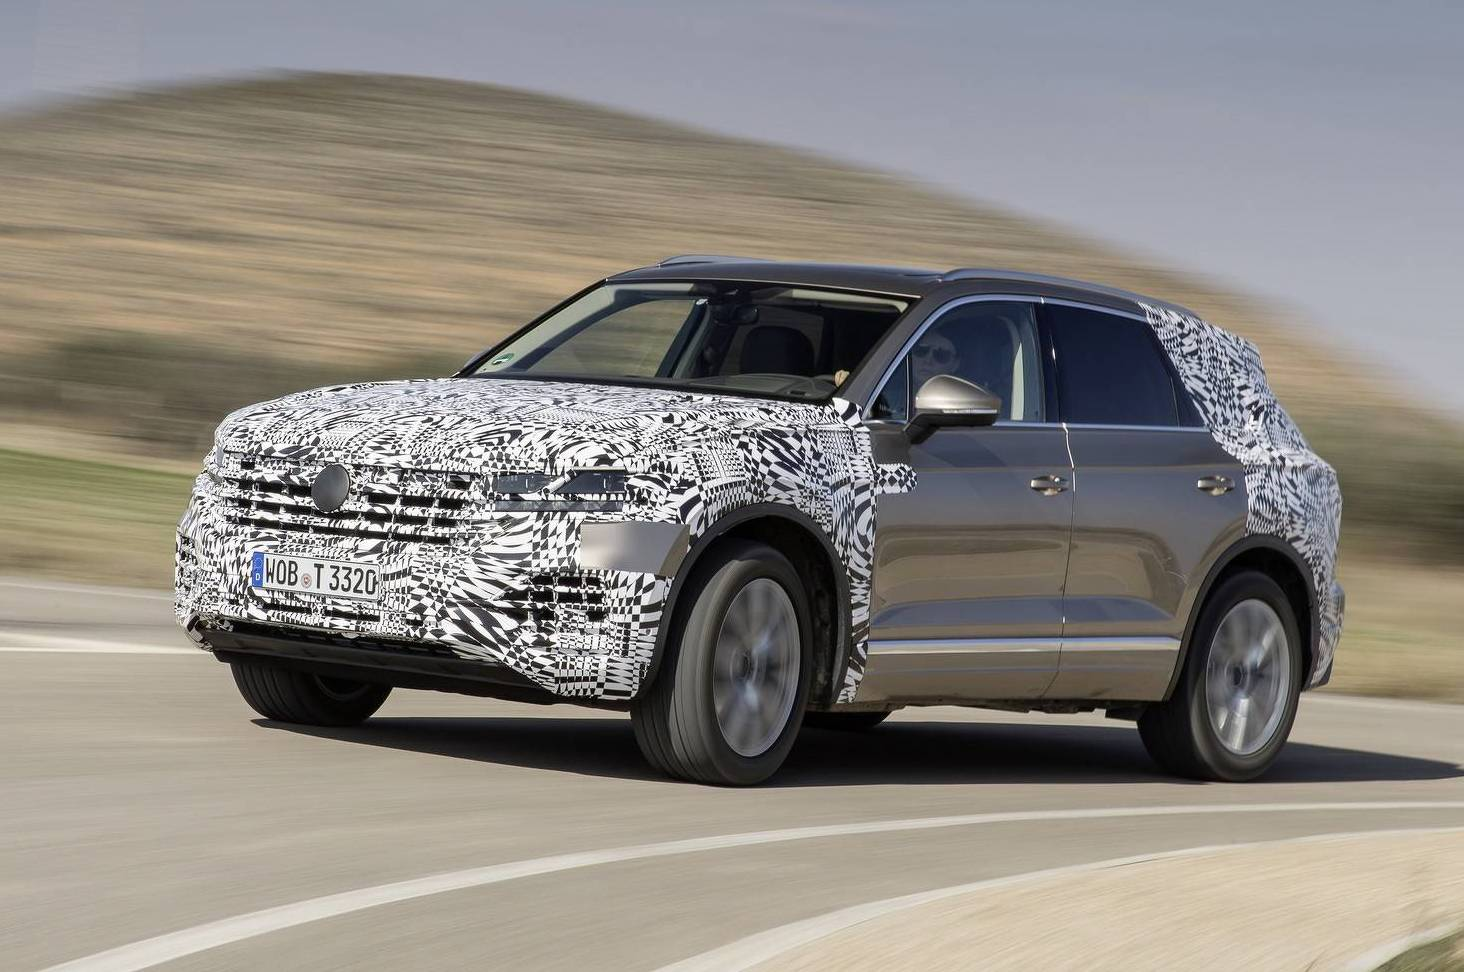 2019 volkswagen touareg previewed interior revealed video performancedrive. Black Bedroom Furniture Sets. Home Design Ideas